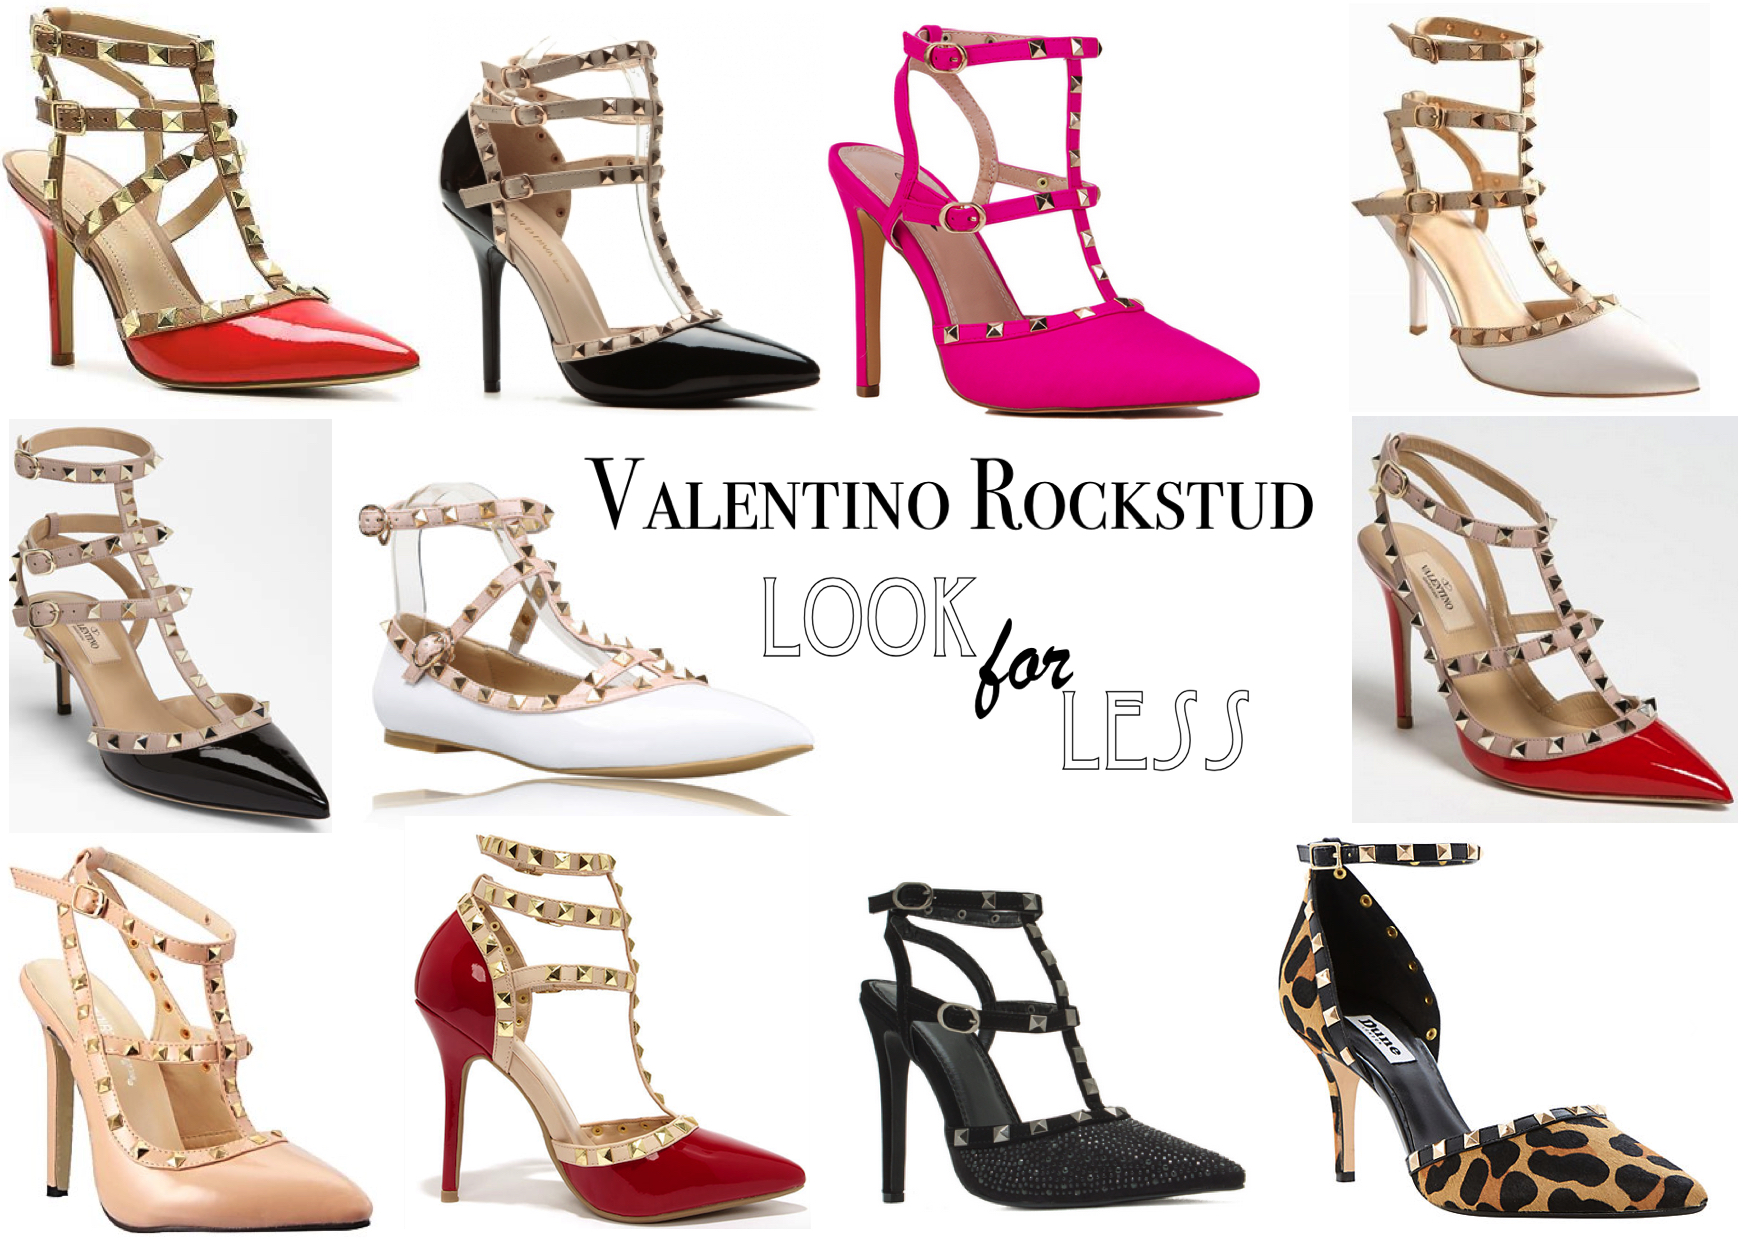 Valentino sandals shoes price - Valentino Sandals Shoes Price 43